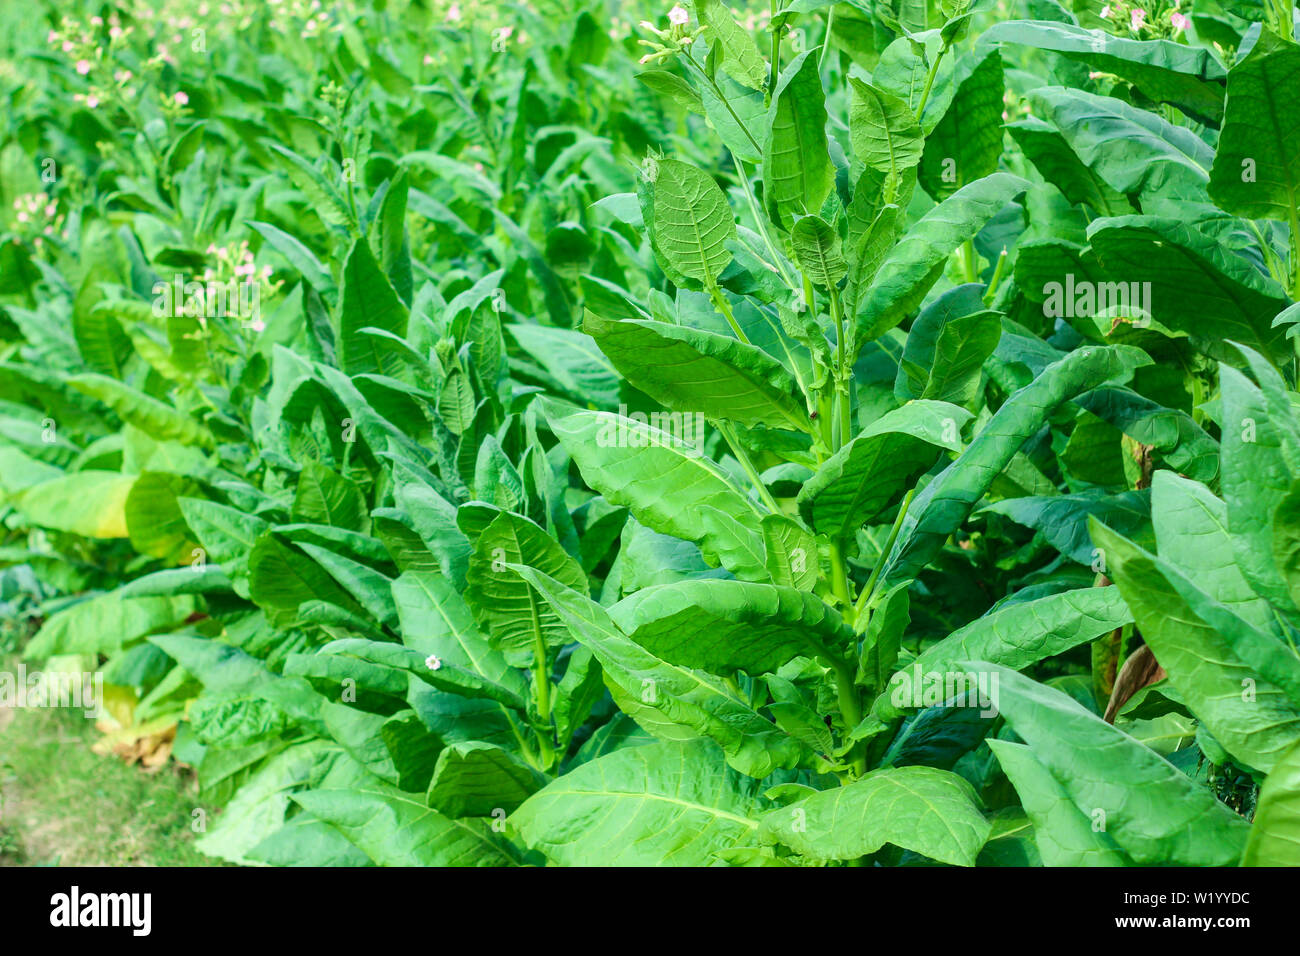 the tobacco leaves are green in a tobacco field - Stock Image